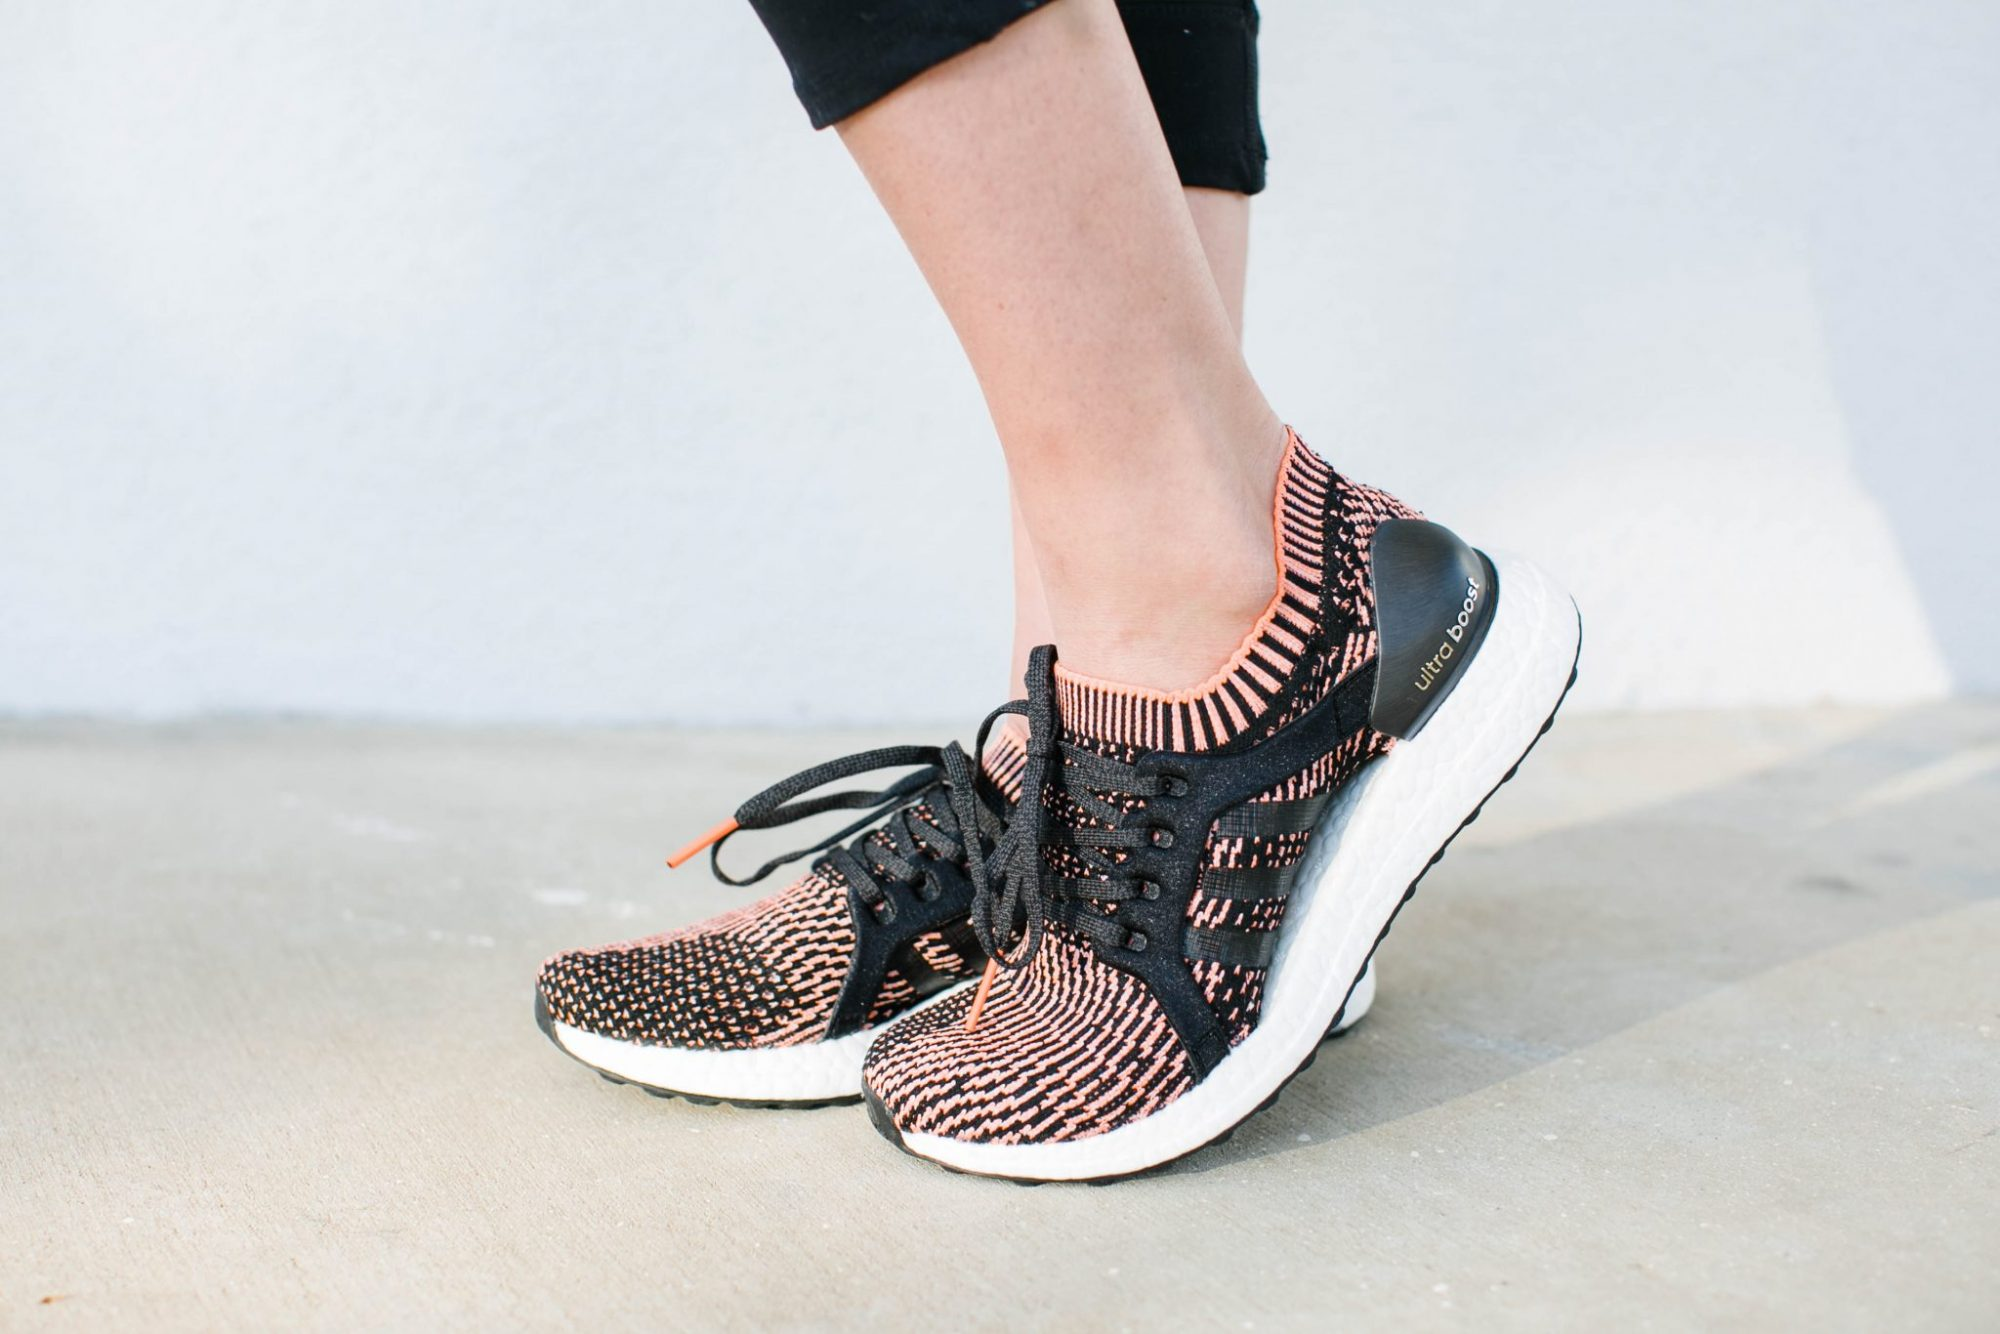 athleisure, adidas ultra boost, RAY-BAN RB3447N 50 ROUND FLAT LENS  MIRROR COLLECTION pink, palm print sports bra, mesh cutout leggings, the best running shoes for women